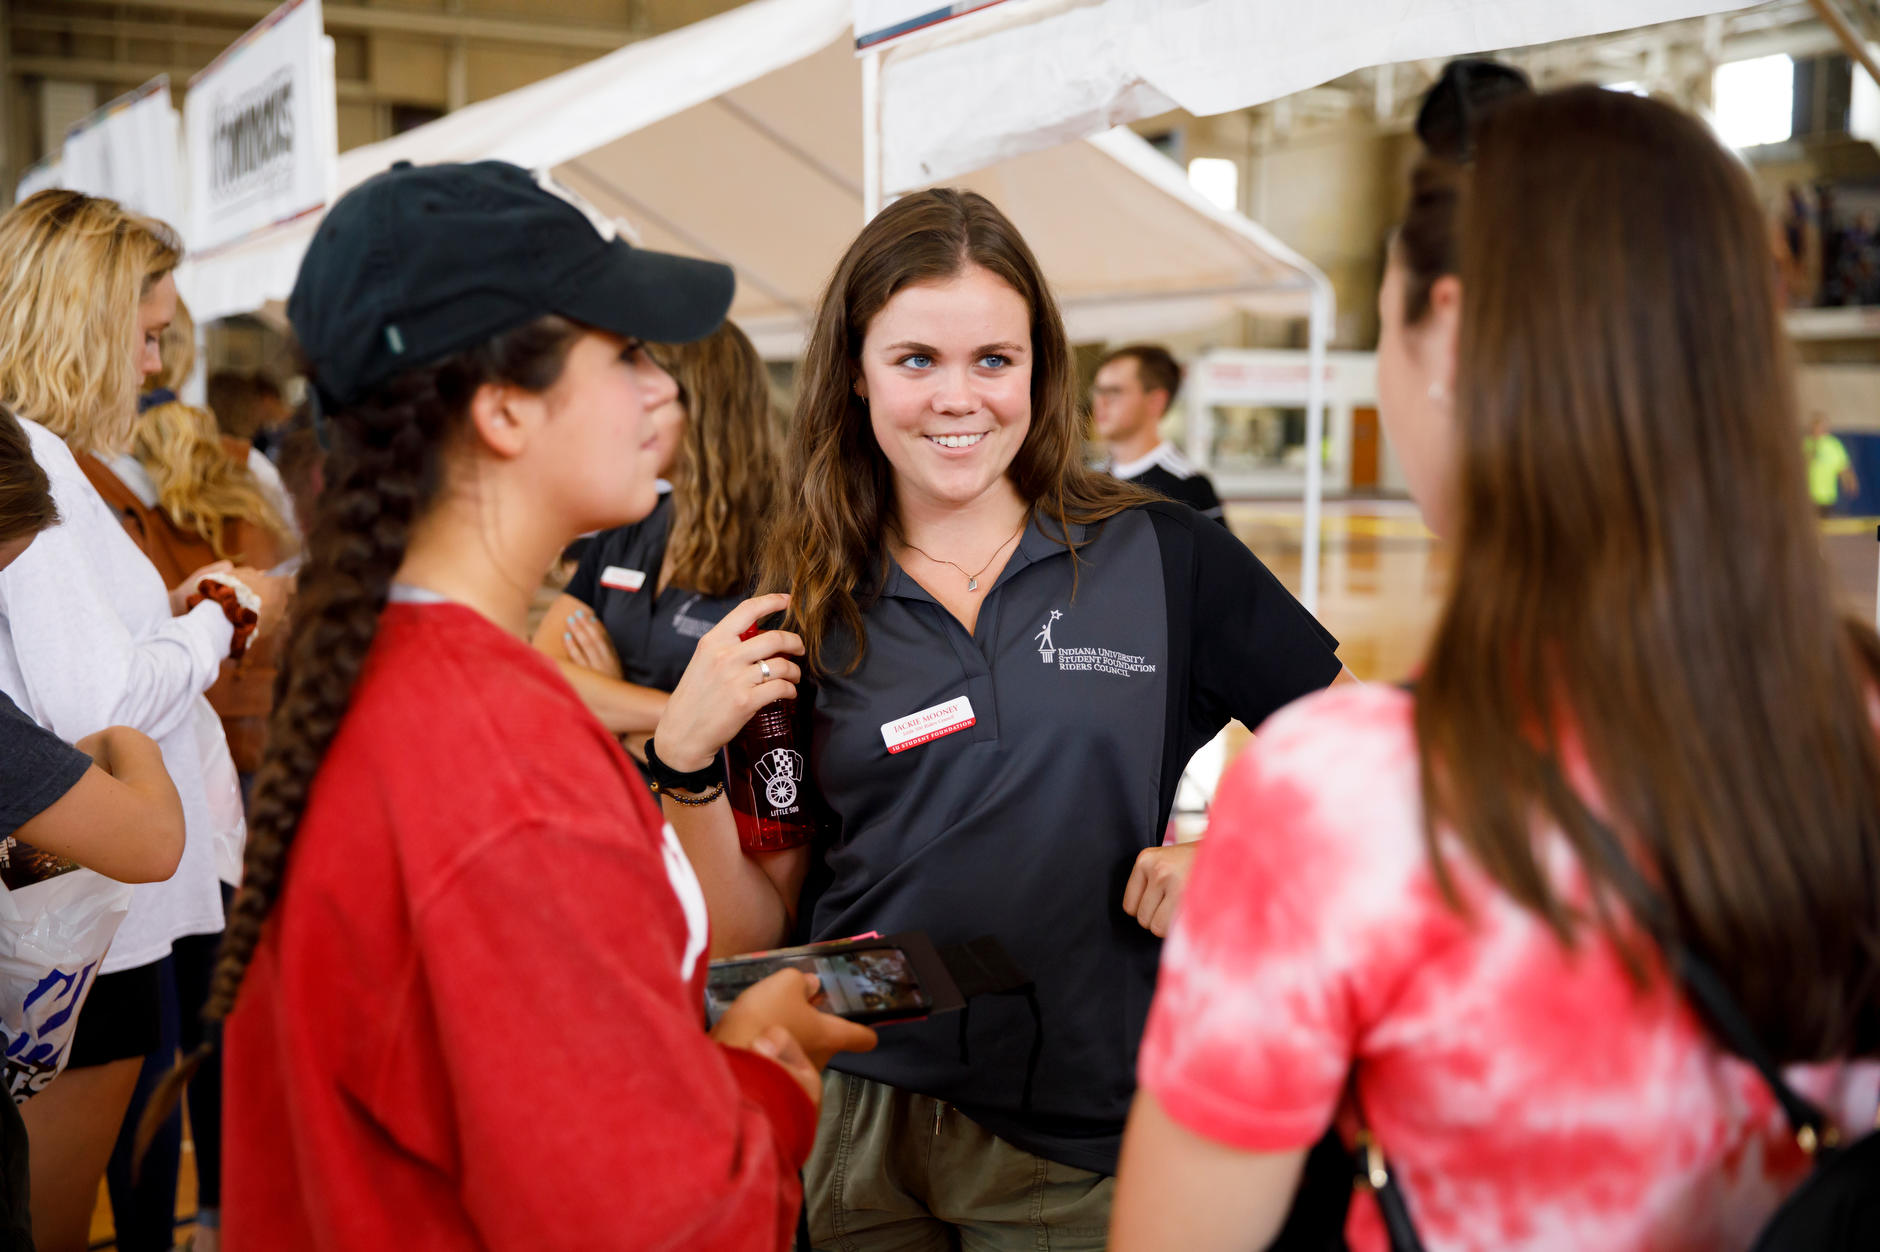 Little 500 Riders Council member Jackie Mooney speaks to a student at the Indiana University Student Foundation booth during RecFest in the Intramural Center at IU Bloomington on Friday, Aug. 23, 2019. (James Brosher/Indiana University)